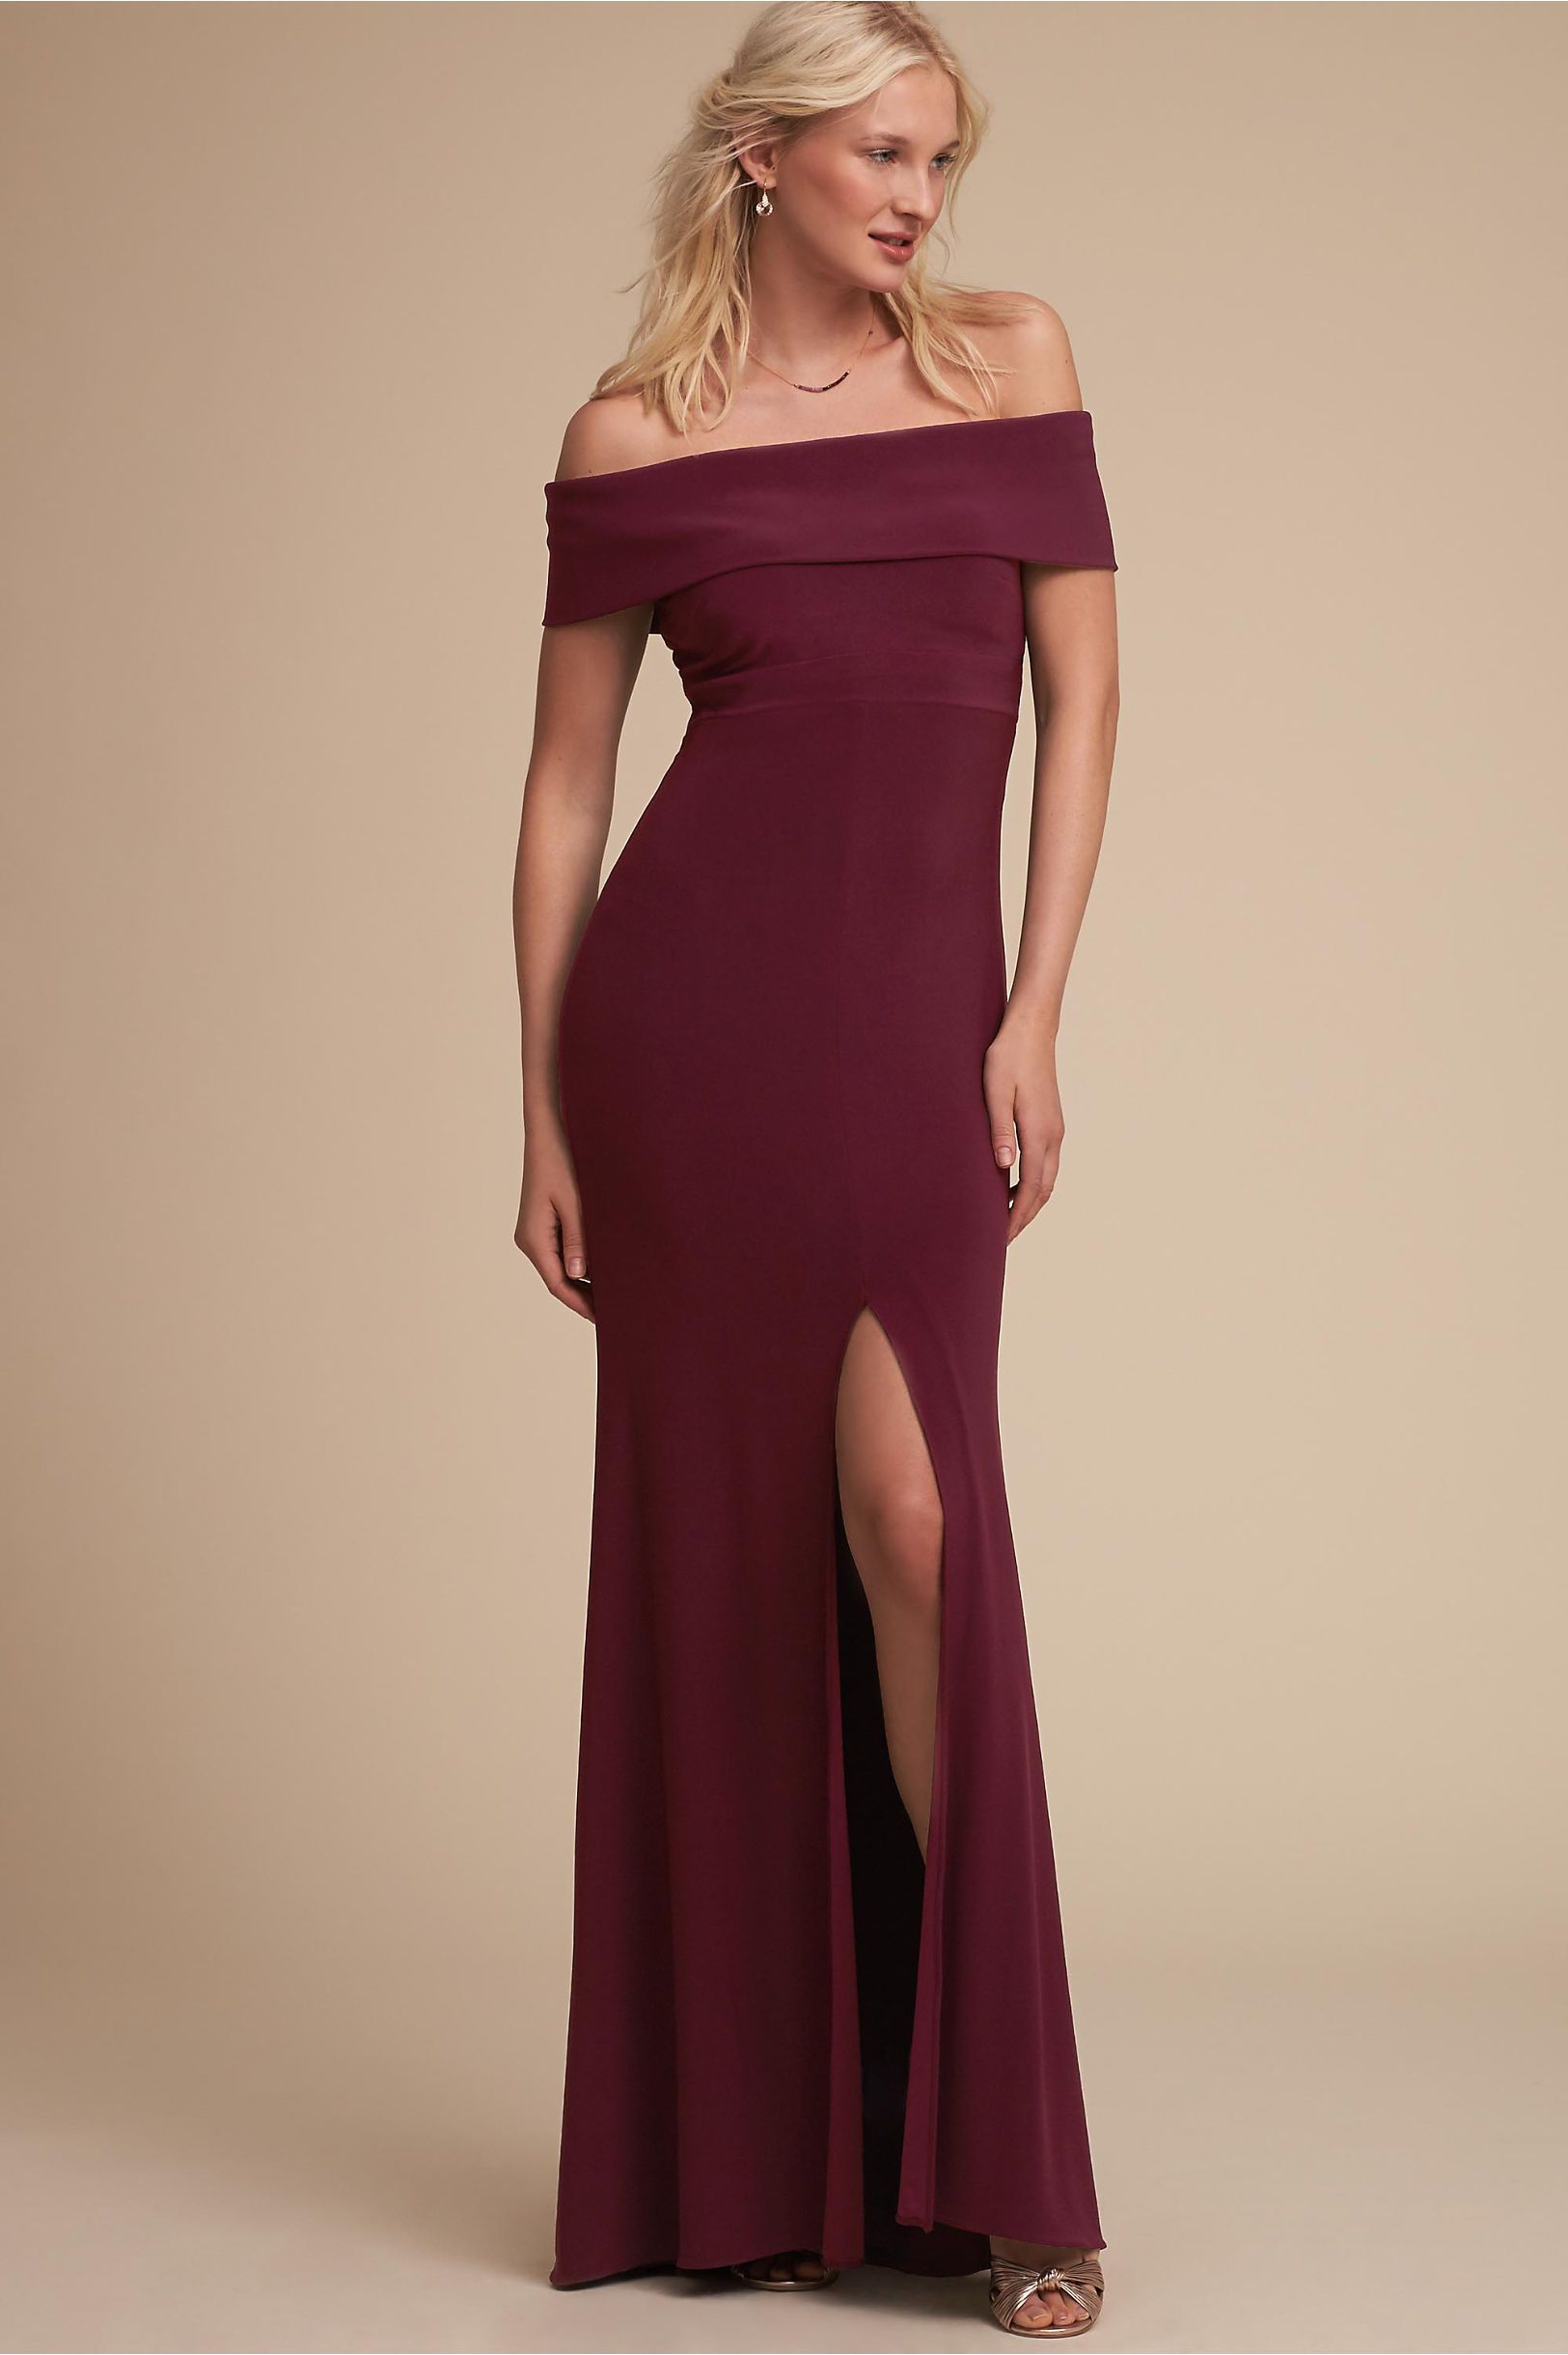 Dress to wear to a fall wedding  BHLDN Ember Dress Wine in Occasion Dresses  BHLDN  Dream Closet